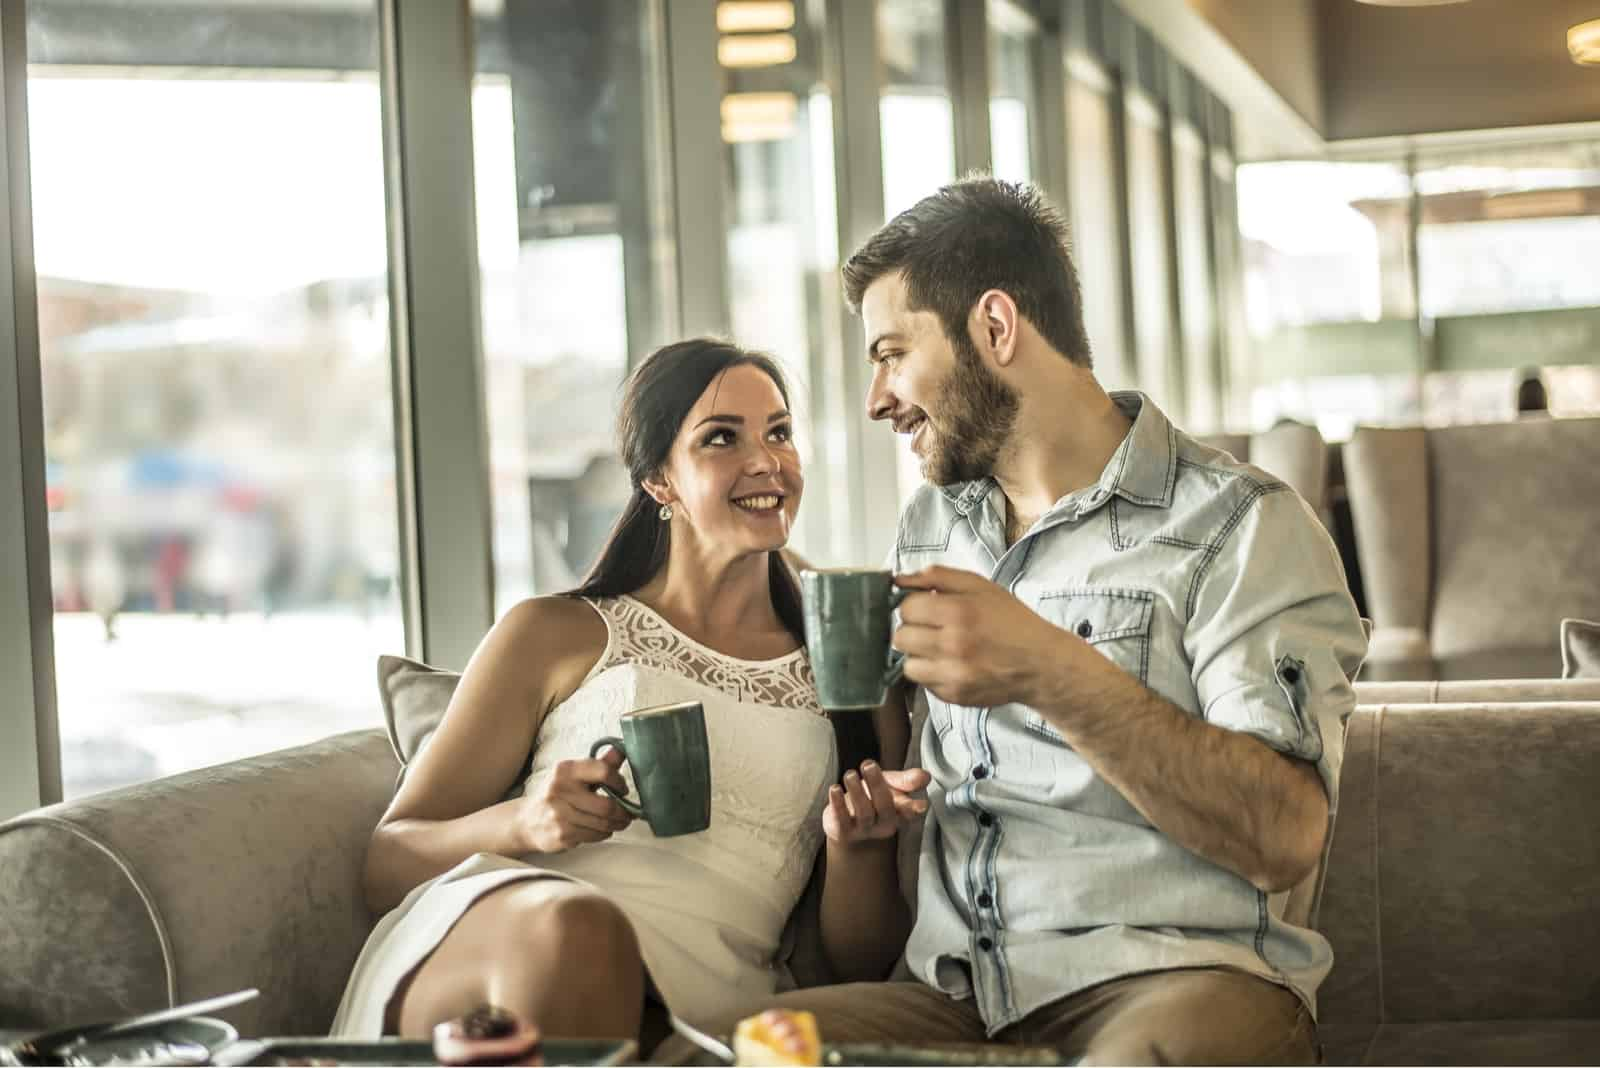 man and woman holding green mugs while sitting in cafe